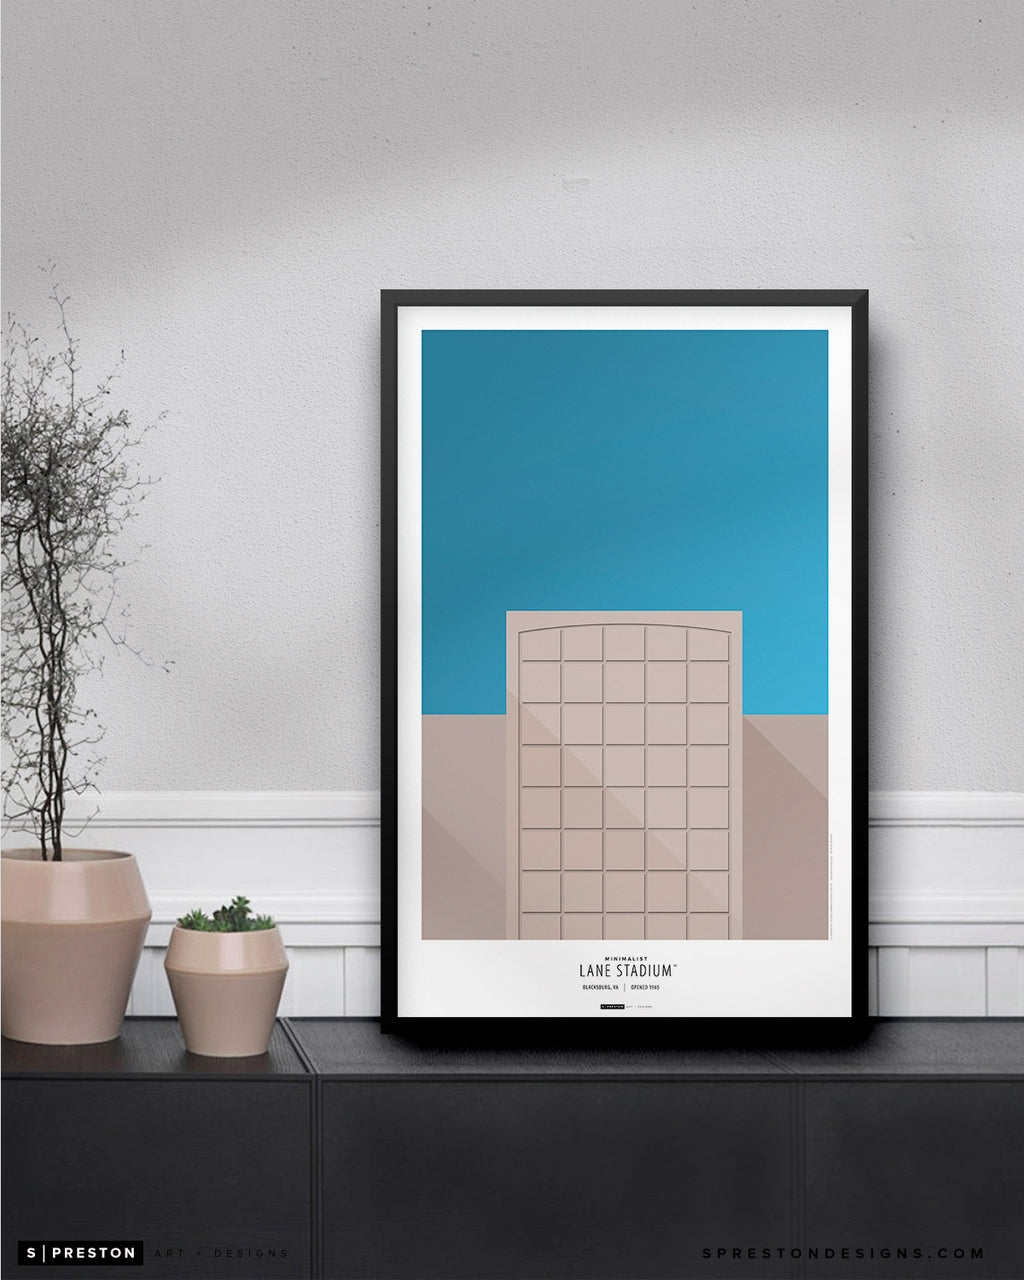 Minimalist Lane Stadium Poster Print Virginia Tech University - S Preston